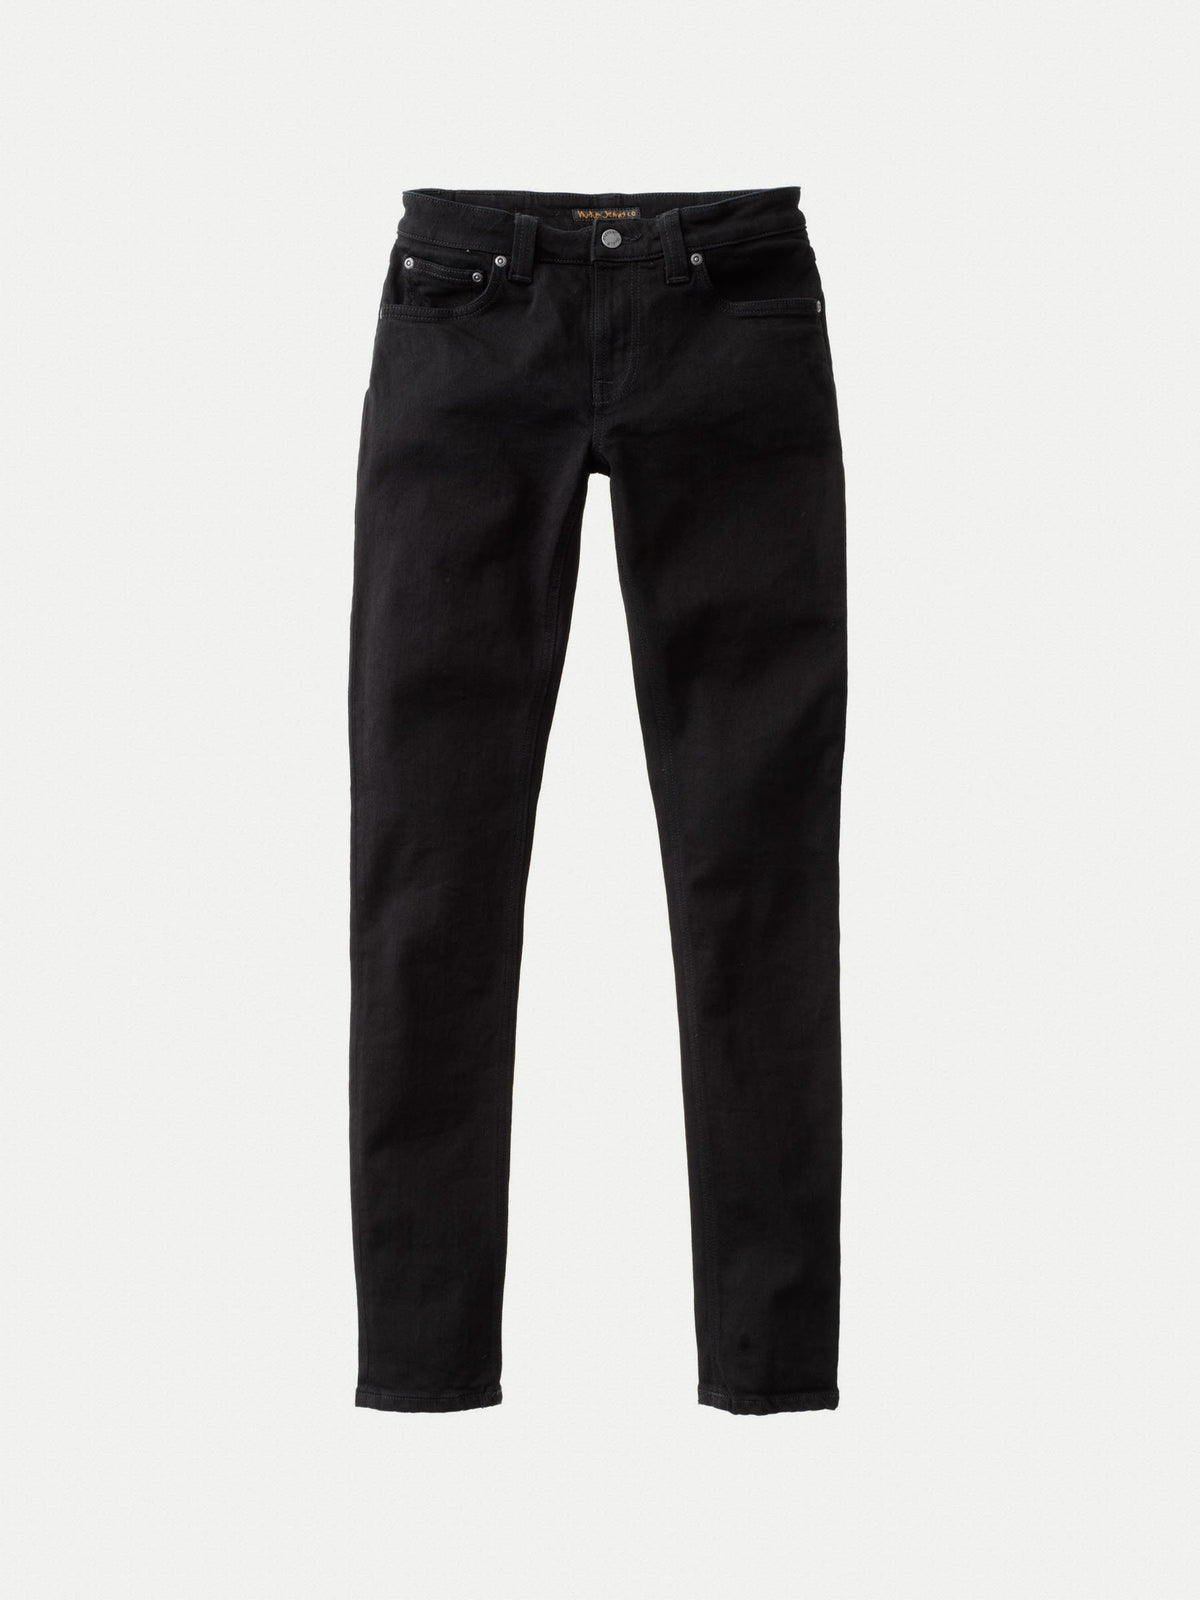 Skinny Lin | 11oz | Black-Black Stretch Denim